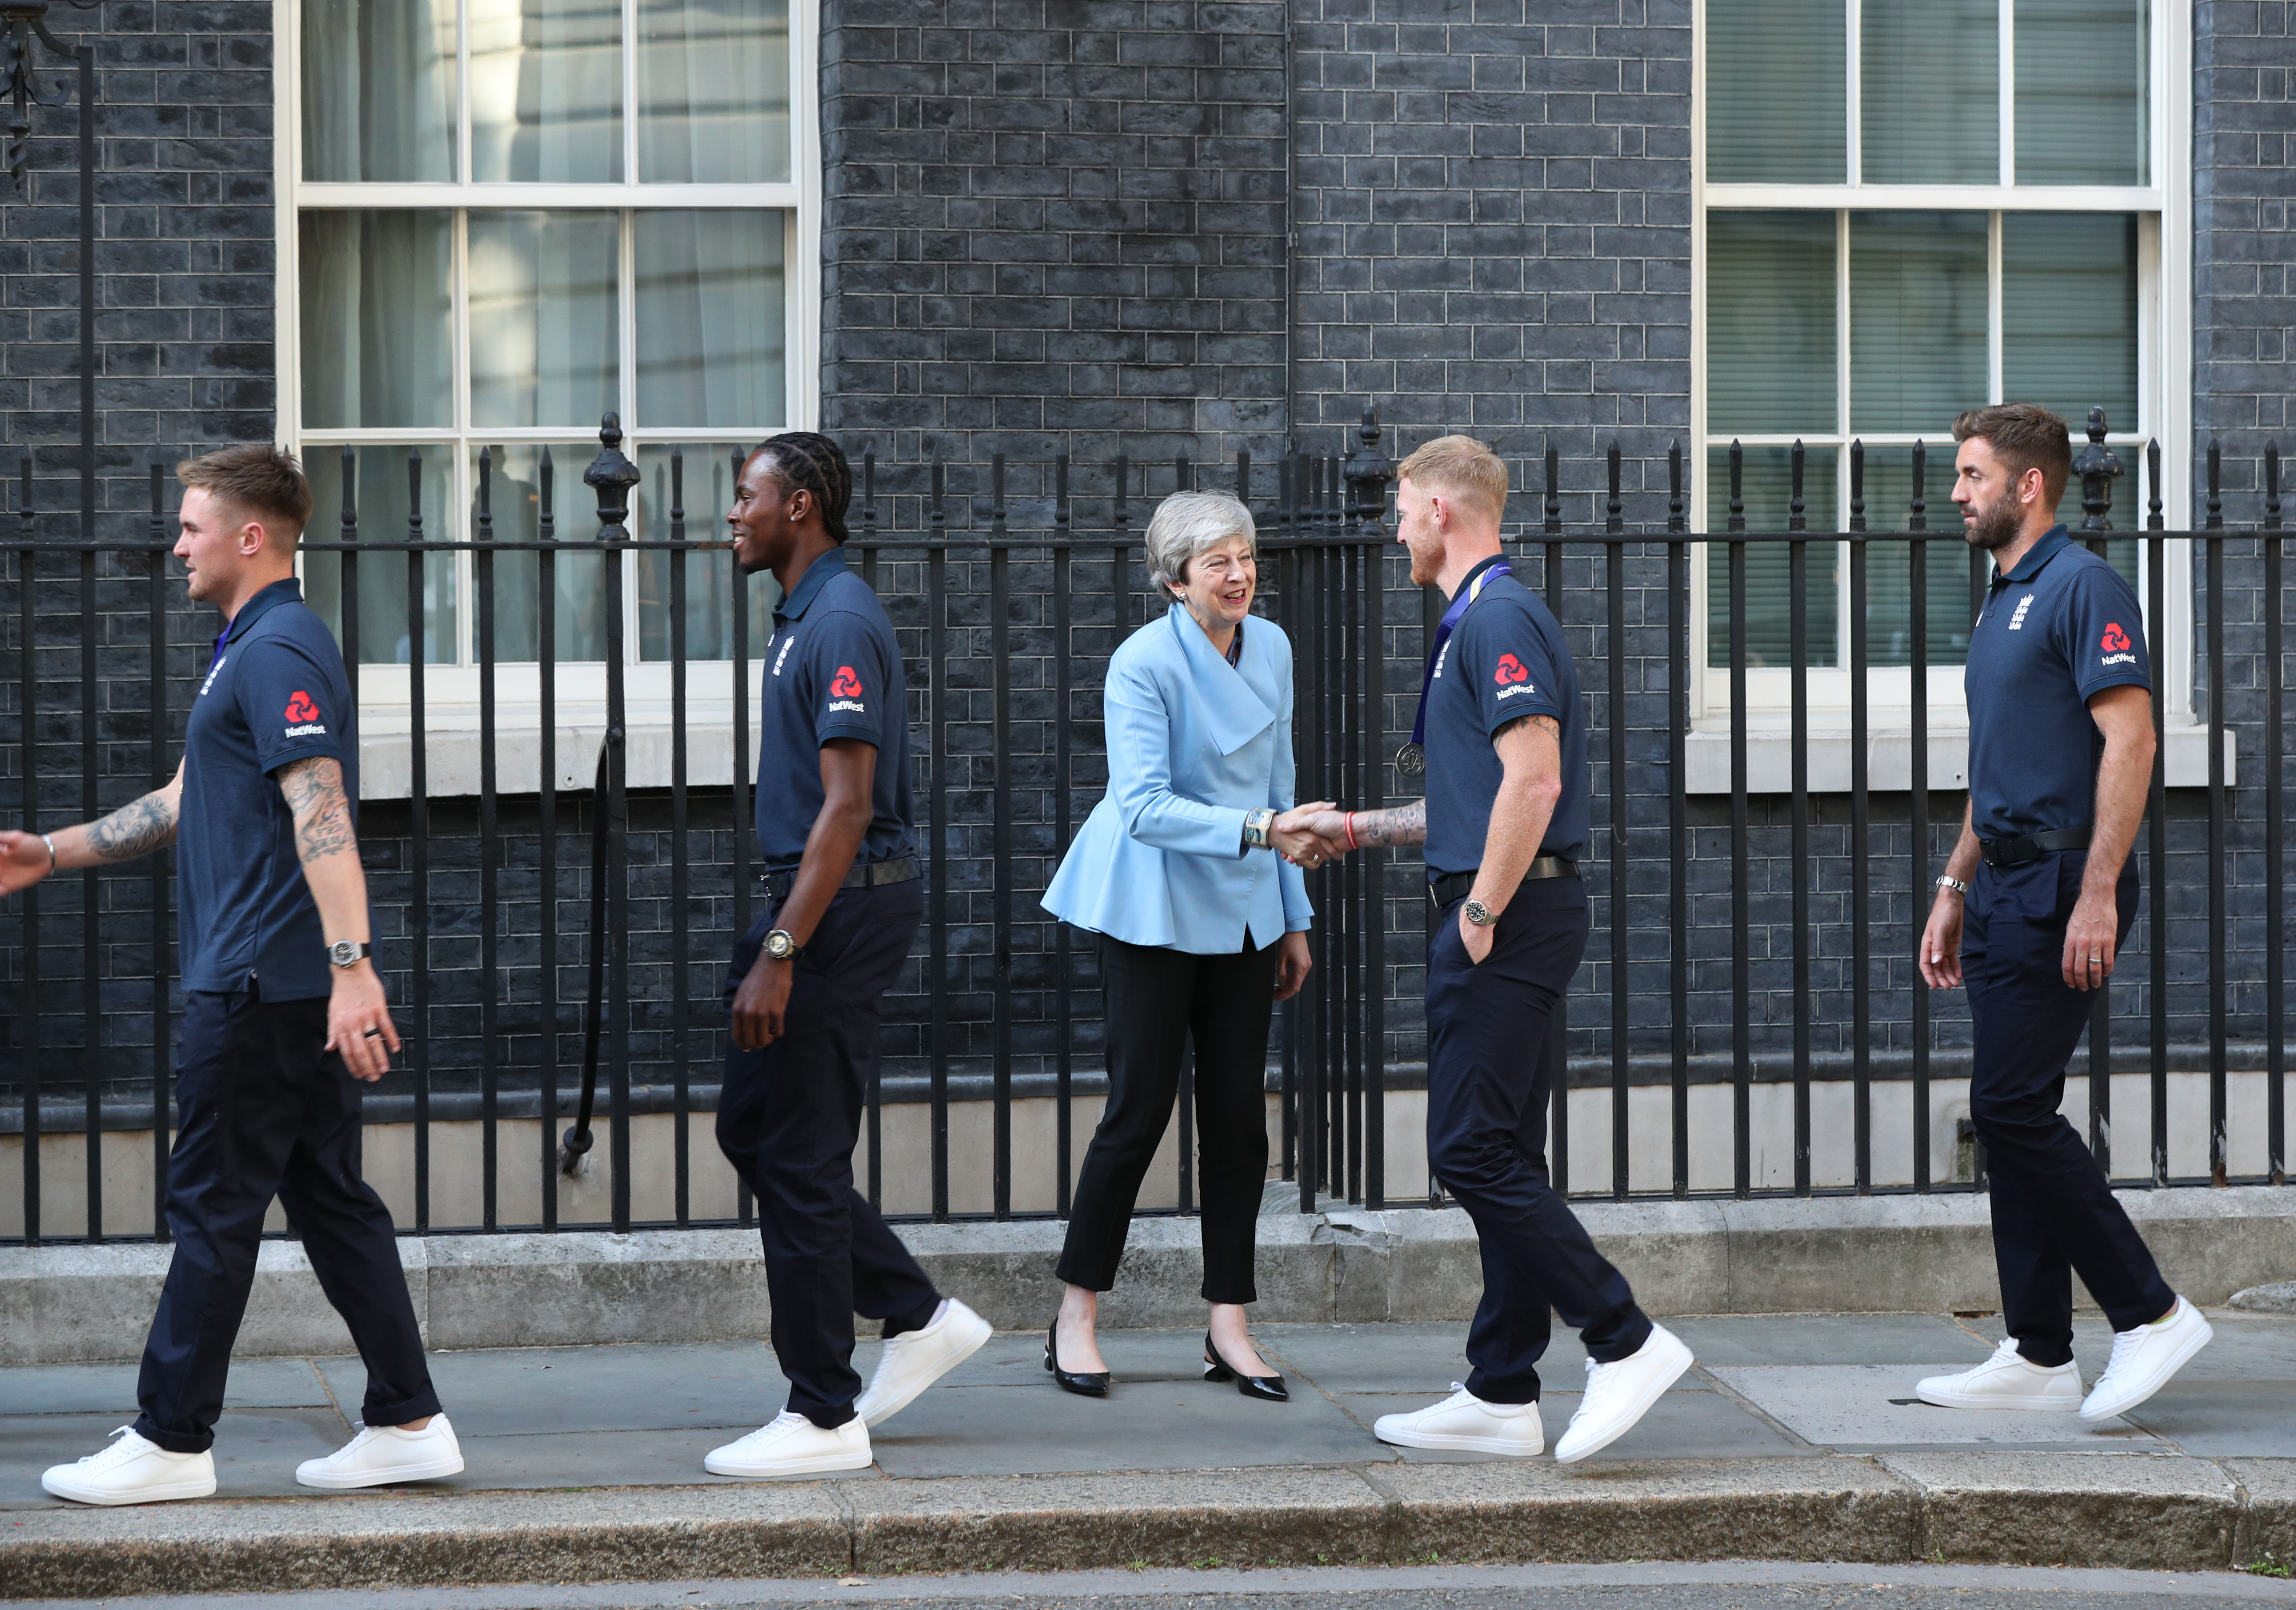 Stokes meets outgoing Prime Minister Theresa May at 10 Downing Street. Image: PA Images